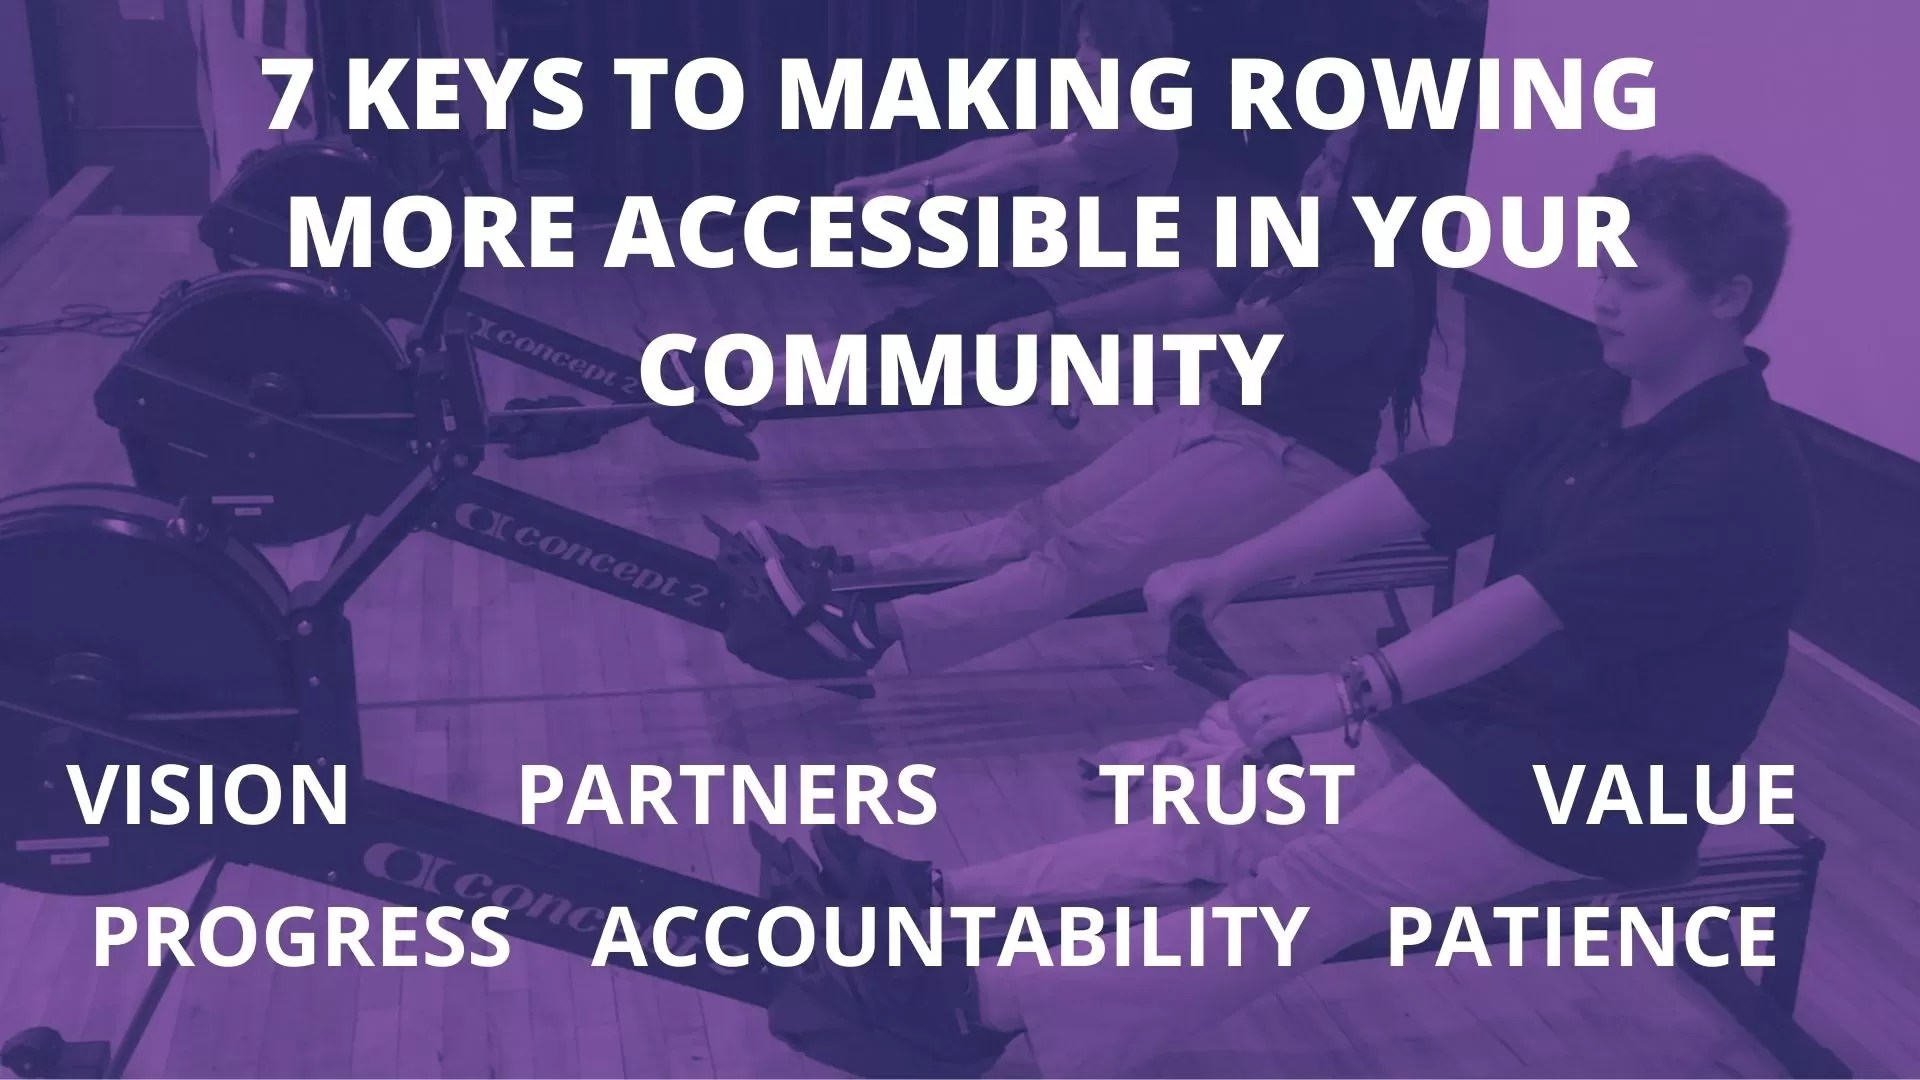 7 KEYS TO MAKING ROWING MORE ACCESSIBLE IN YOUR COMMUNITY